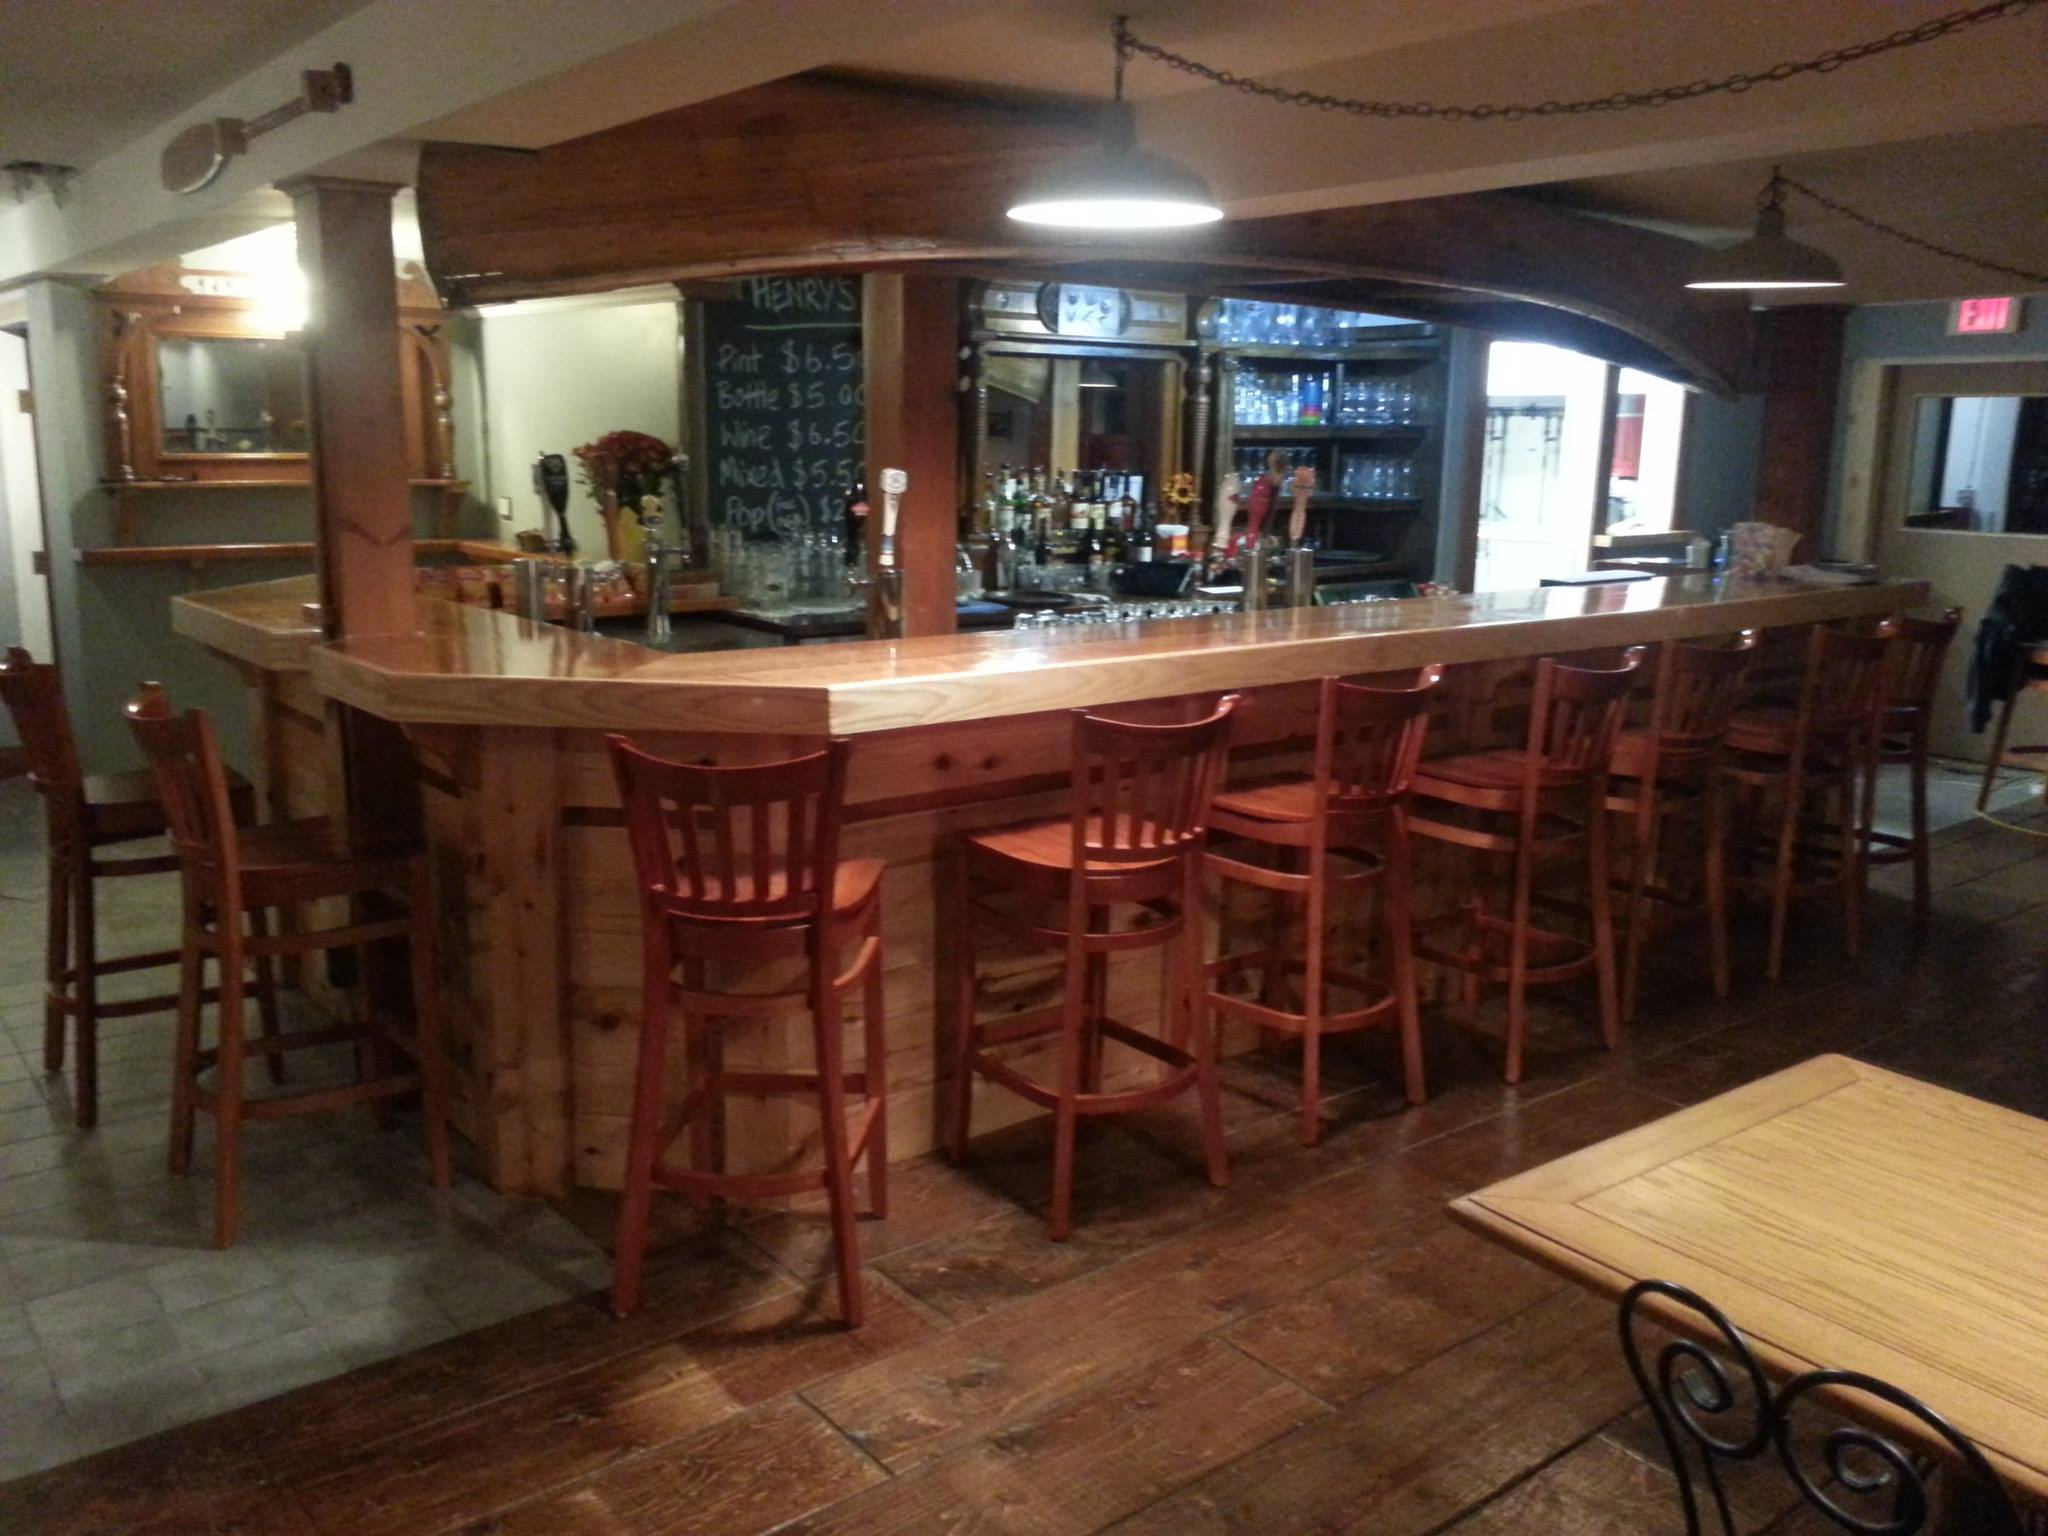 Restaurant furniture canada helps canoe paddle to a